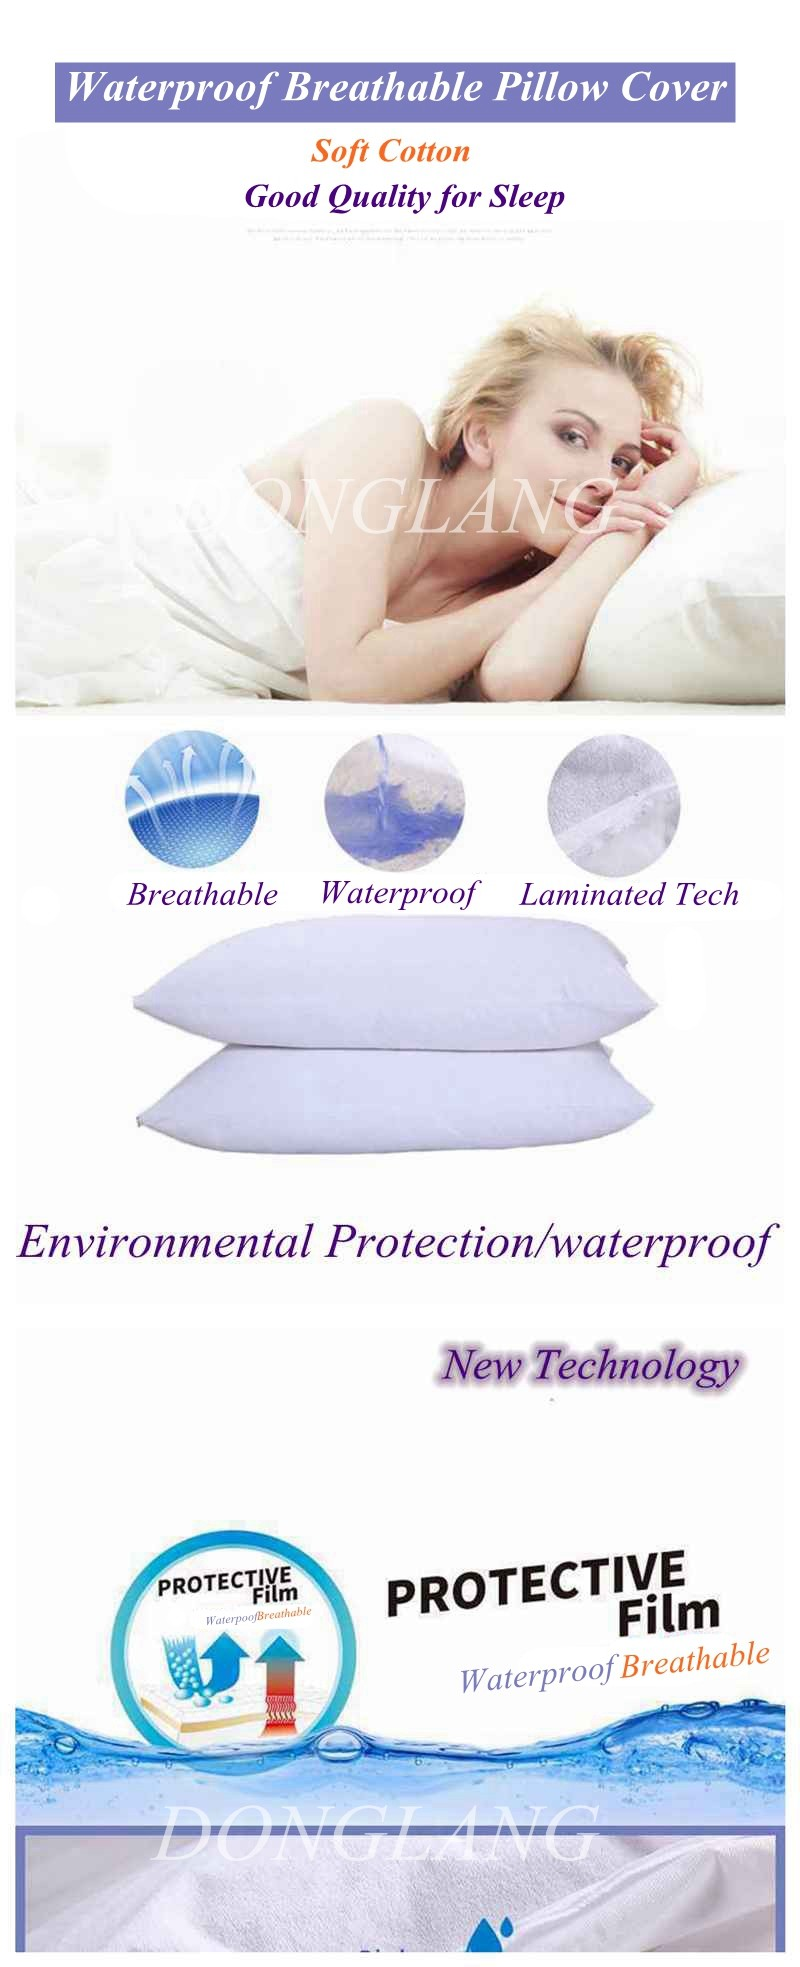 Hot-Selling High Quality Low Price Chair Pillow Covers/100% Cotton Waterproof Pillow Cover